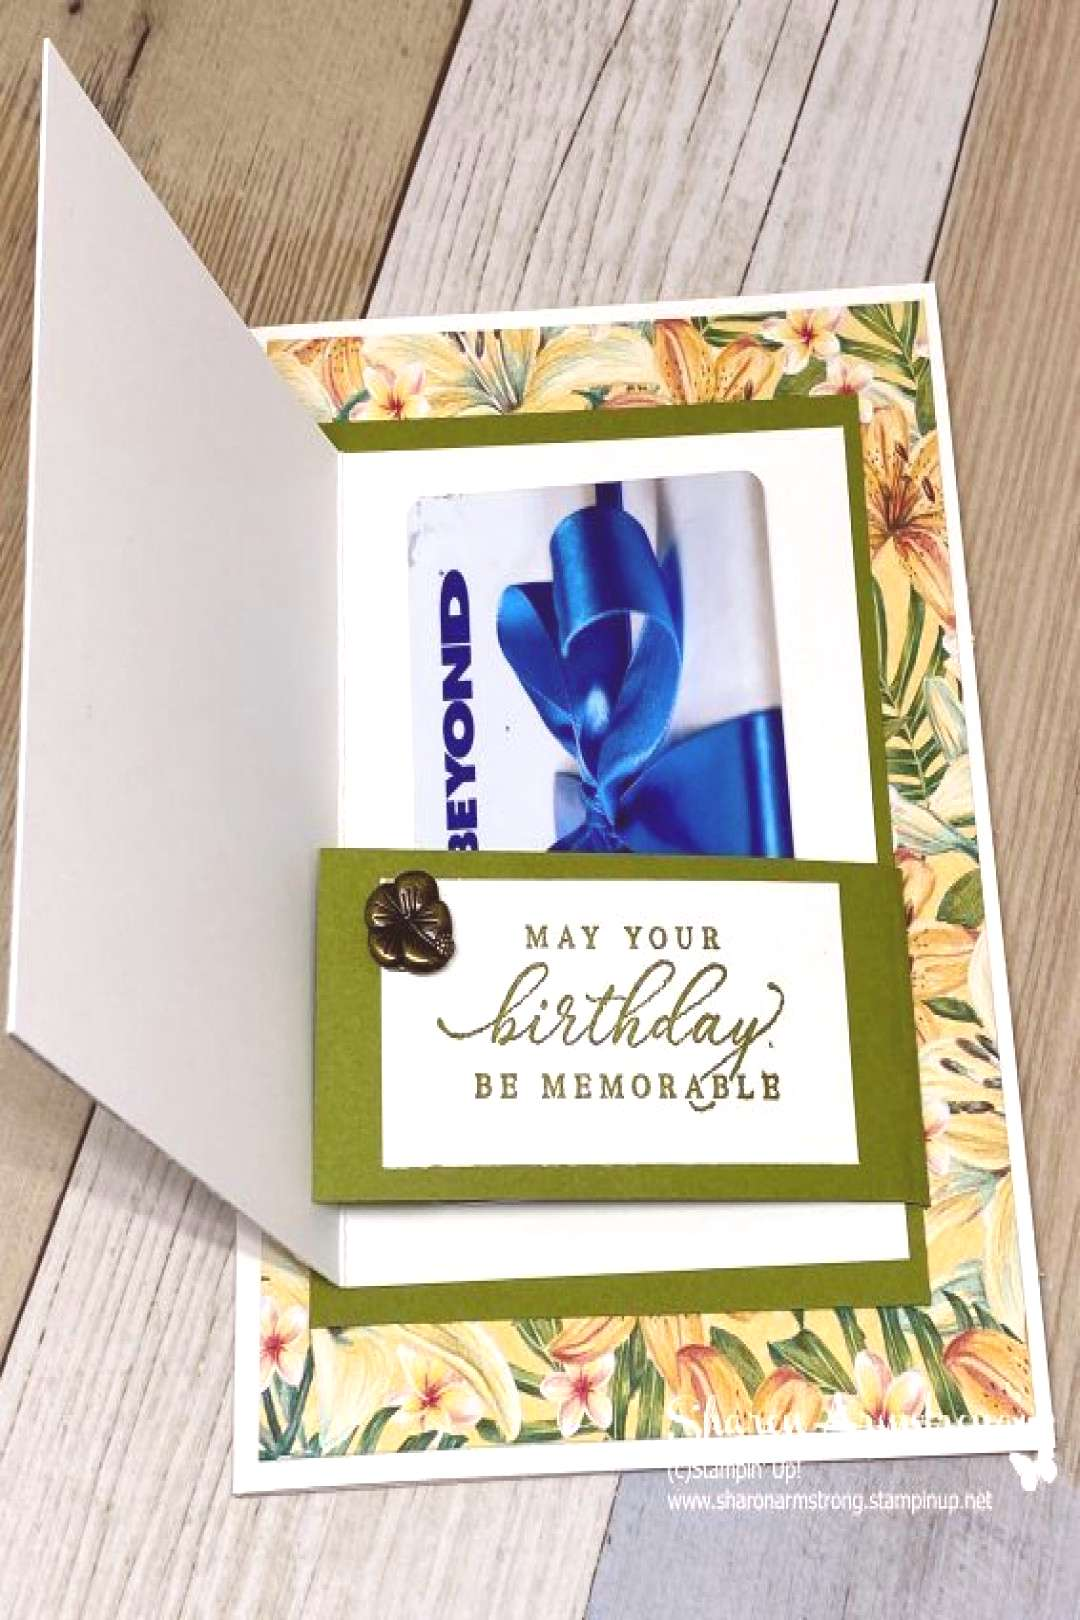 Need a Birthday gift card holder you can make in minutes? Your special person will love this uniqu